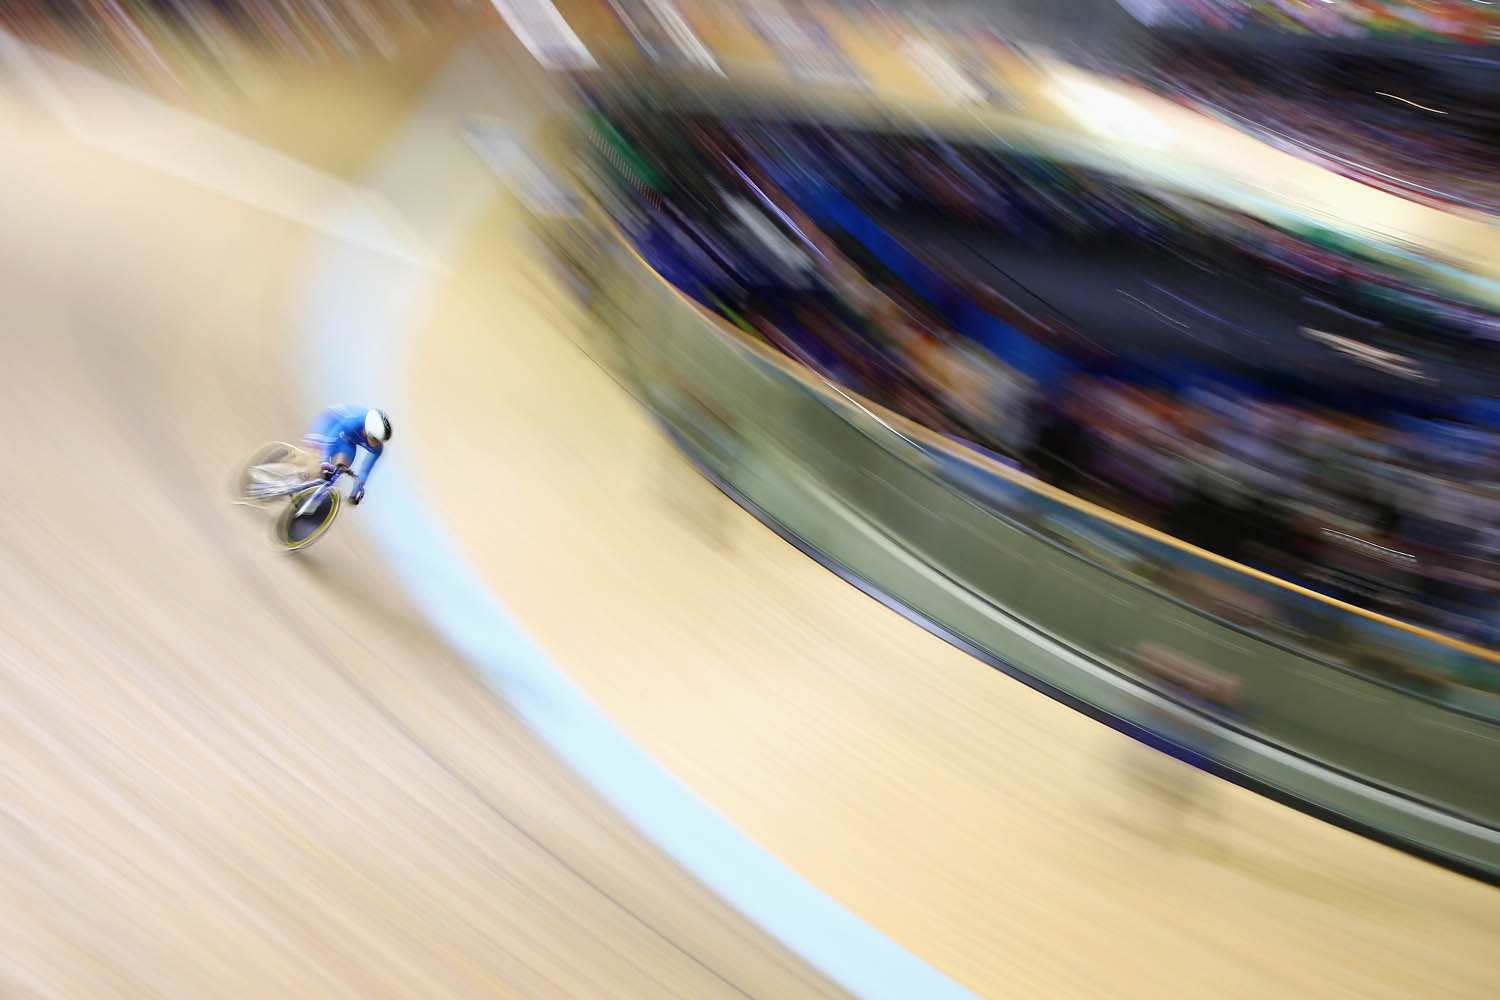 Jul. 26, 2014. Eleanor Richardson of Scotland competes in the women's sprint qualifying at Sir Chris Hoy Velodrome during day three of the Glasgow 2014 Commonwealth Games in Glasgow, United Kingdom.